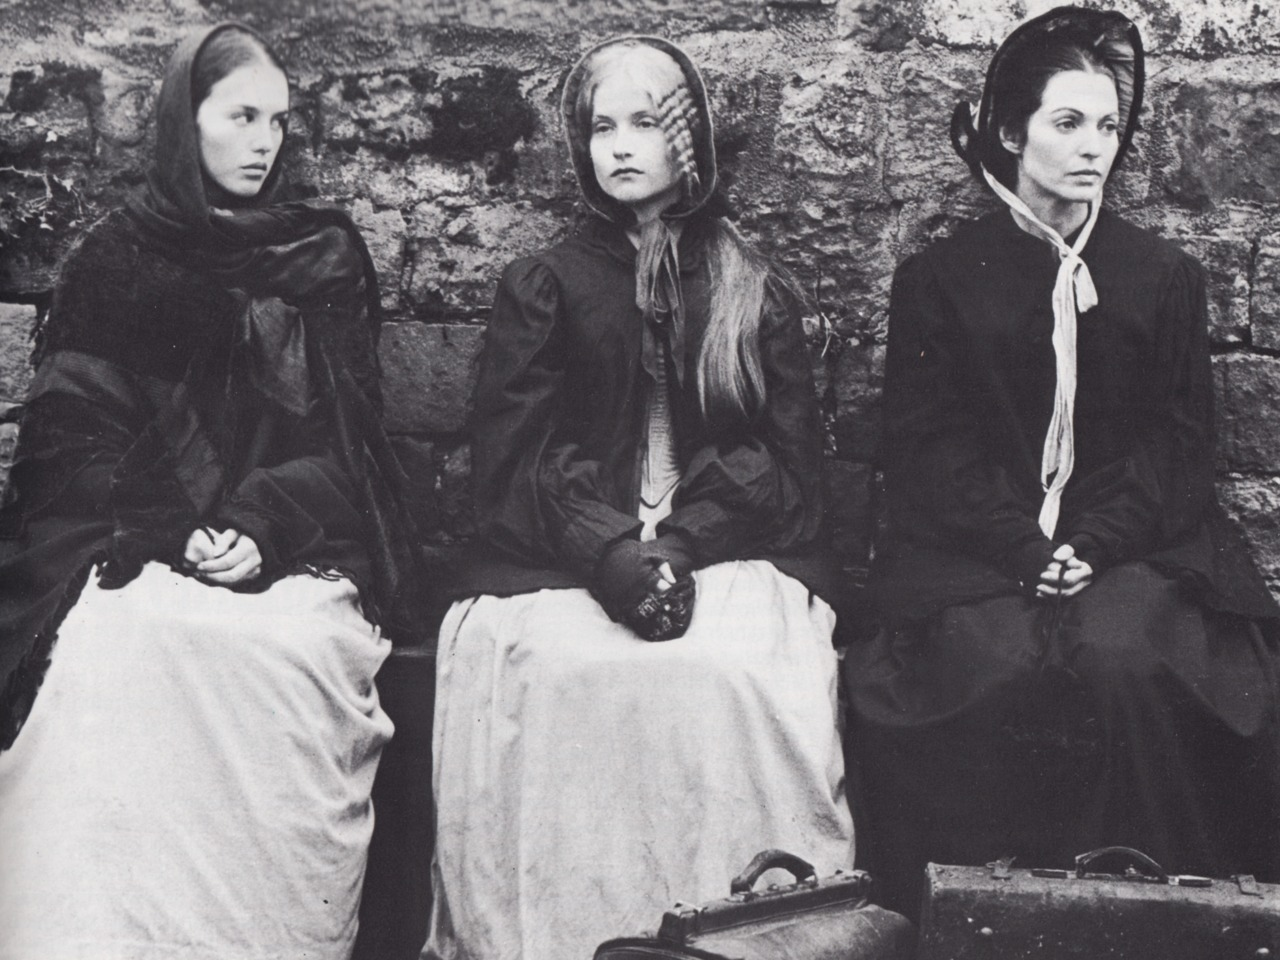 paperspots:  The Bronte Sisters with Isabelle Adjani, Isabelle Huppert, and Marie-France Pisier (1979).